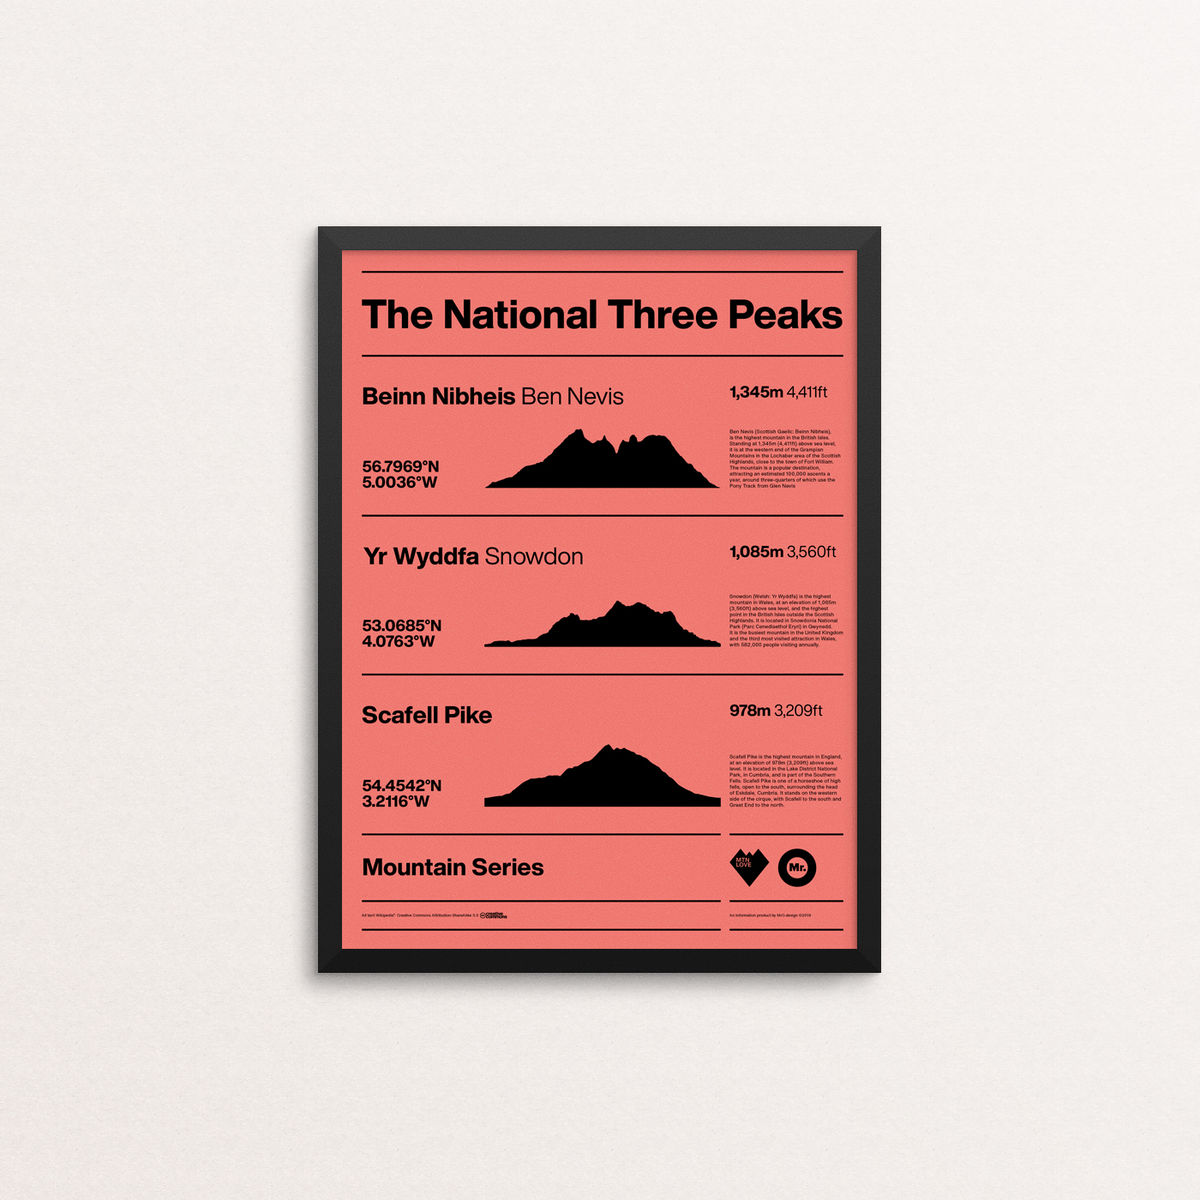 MTN Love - The National Three Peaks  - product image